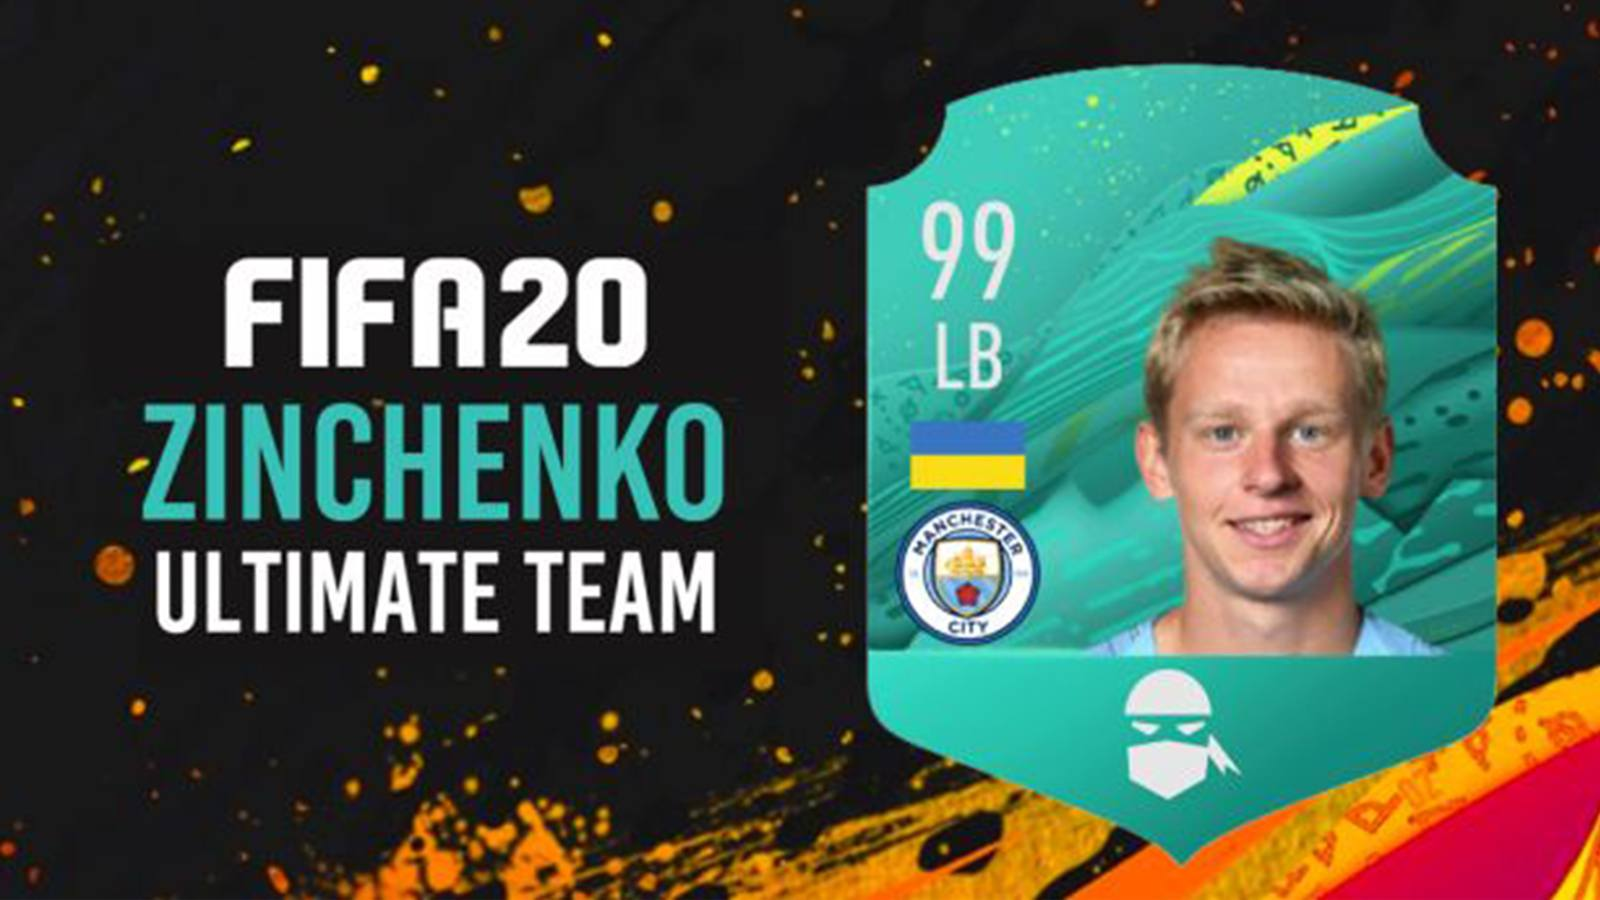 Equipe de Zinchenko sur le mode Ultimate Team de FIFA 20